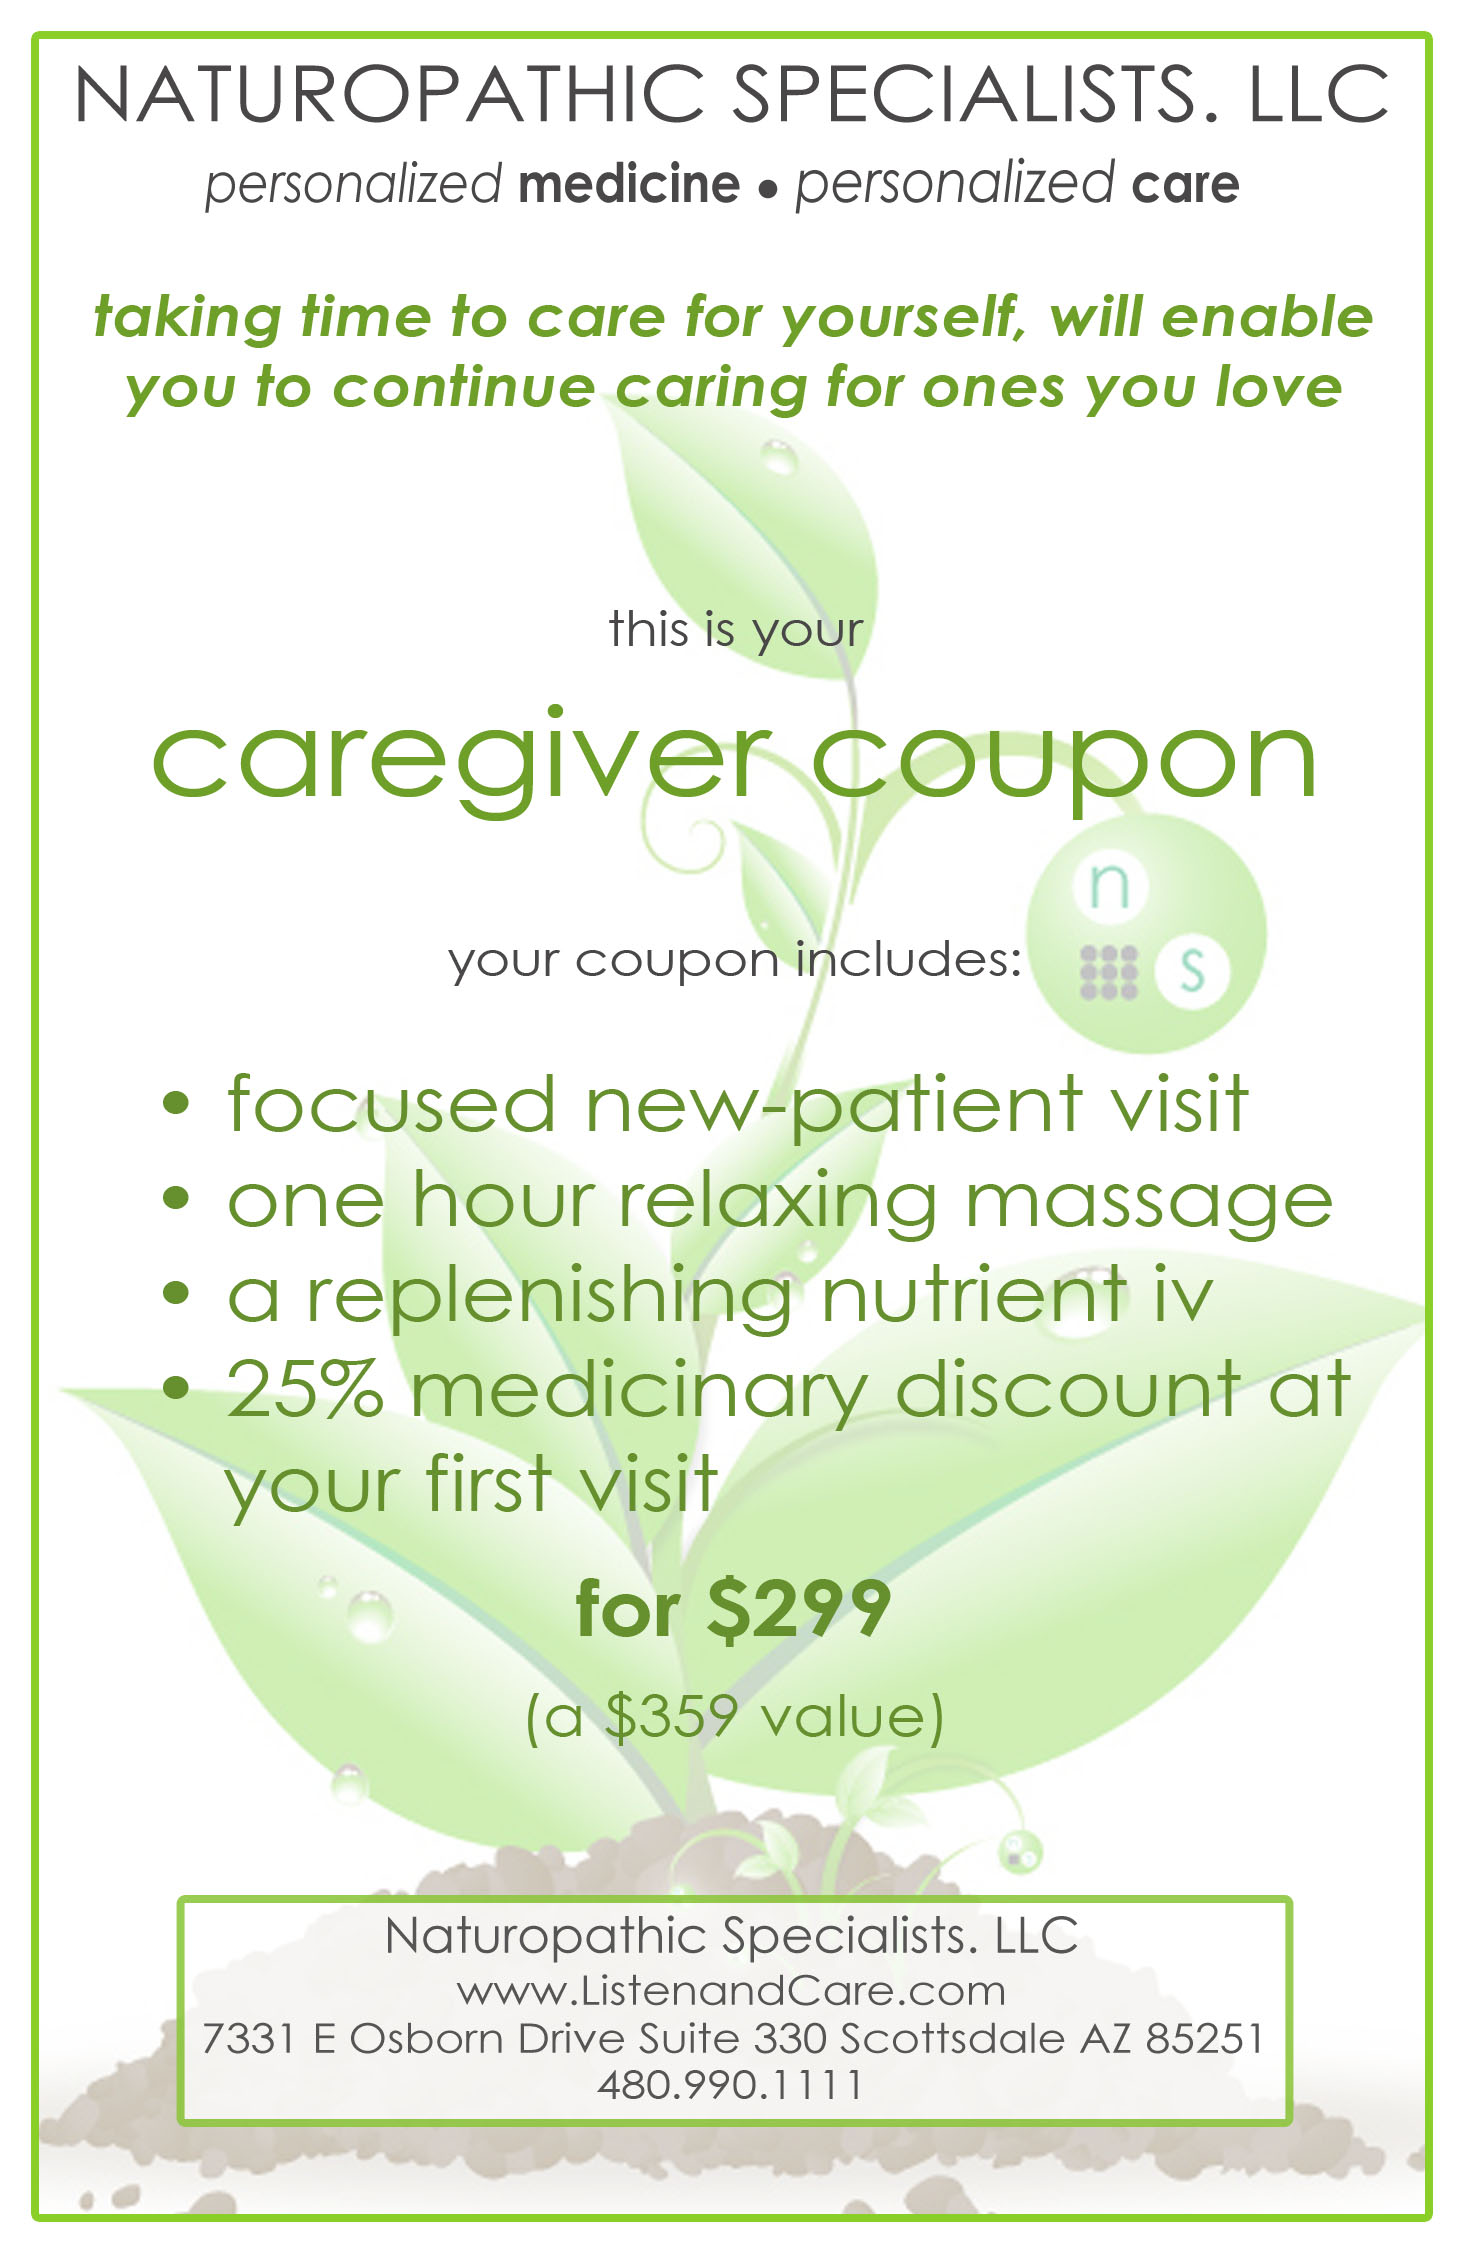 caregiver coupon